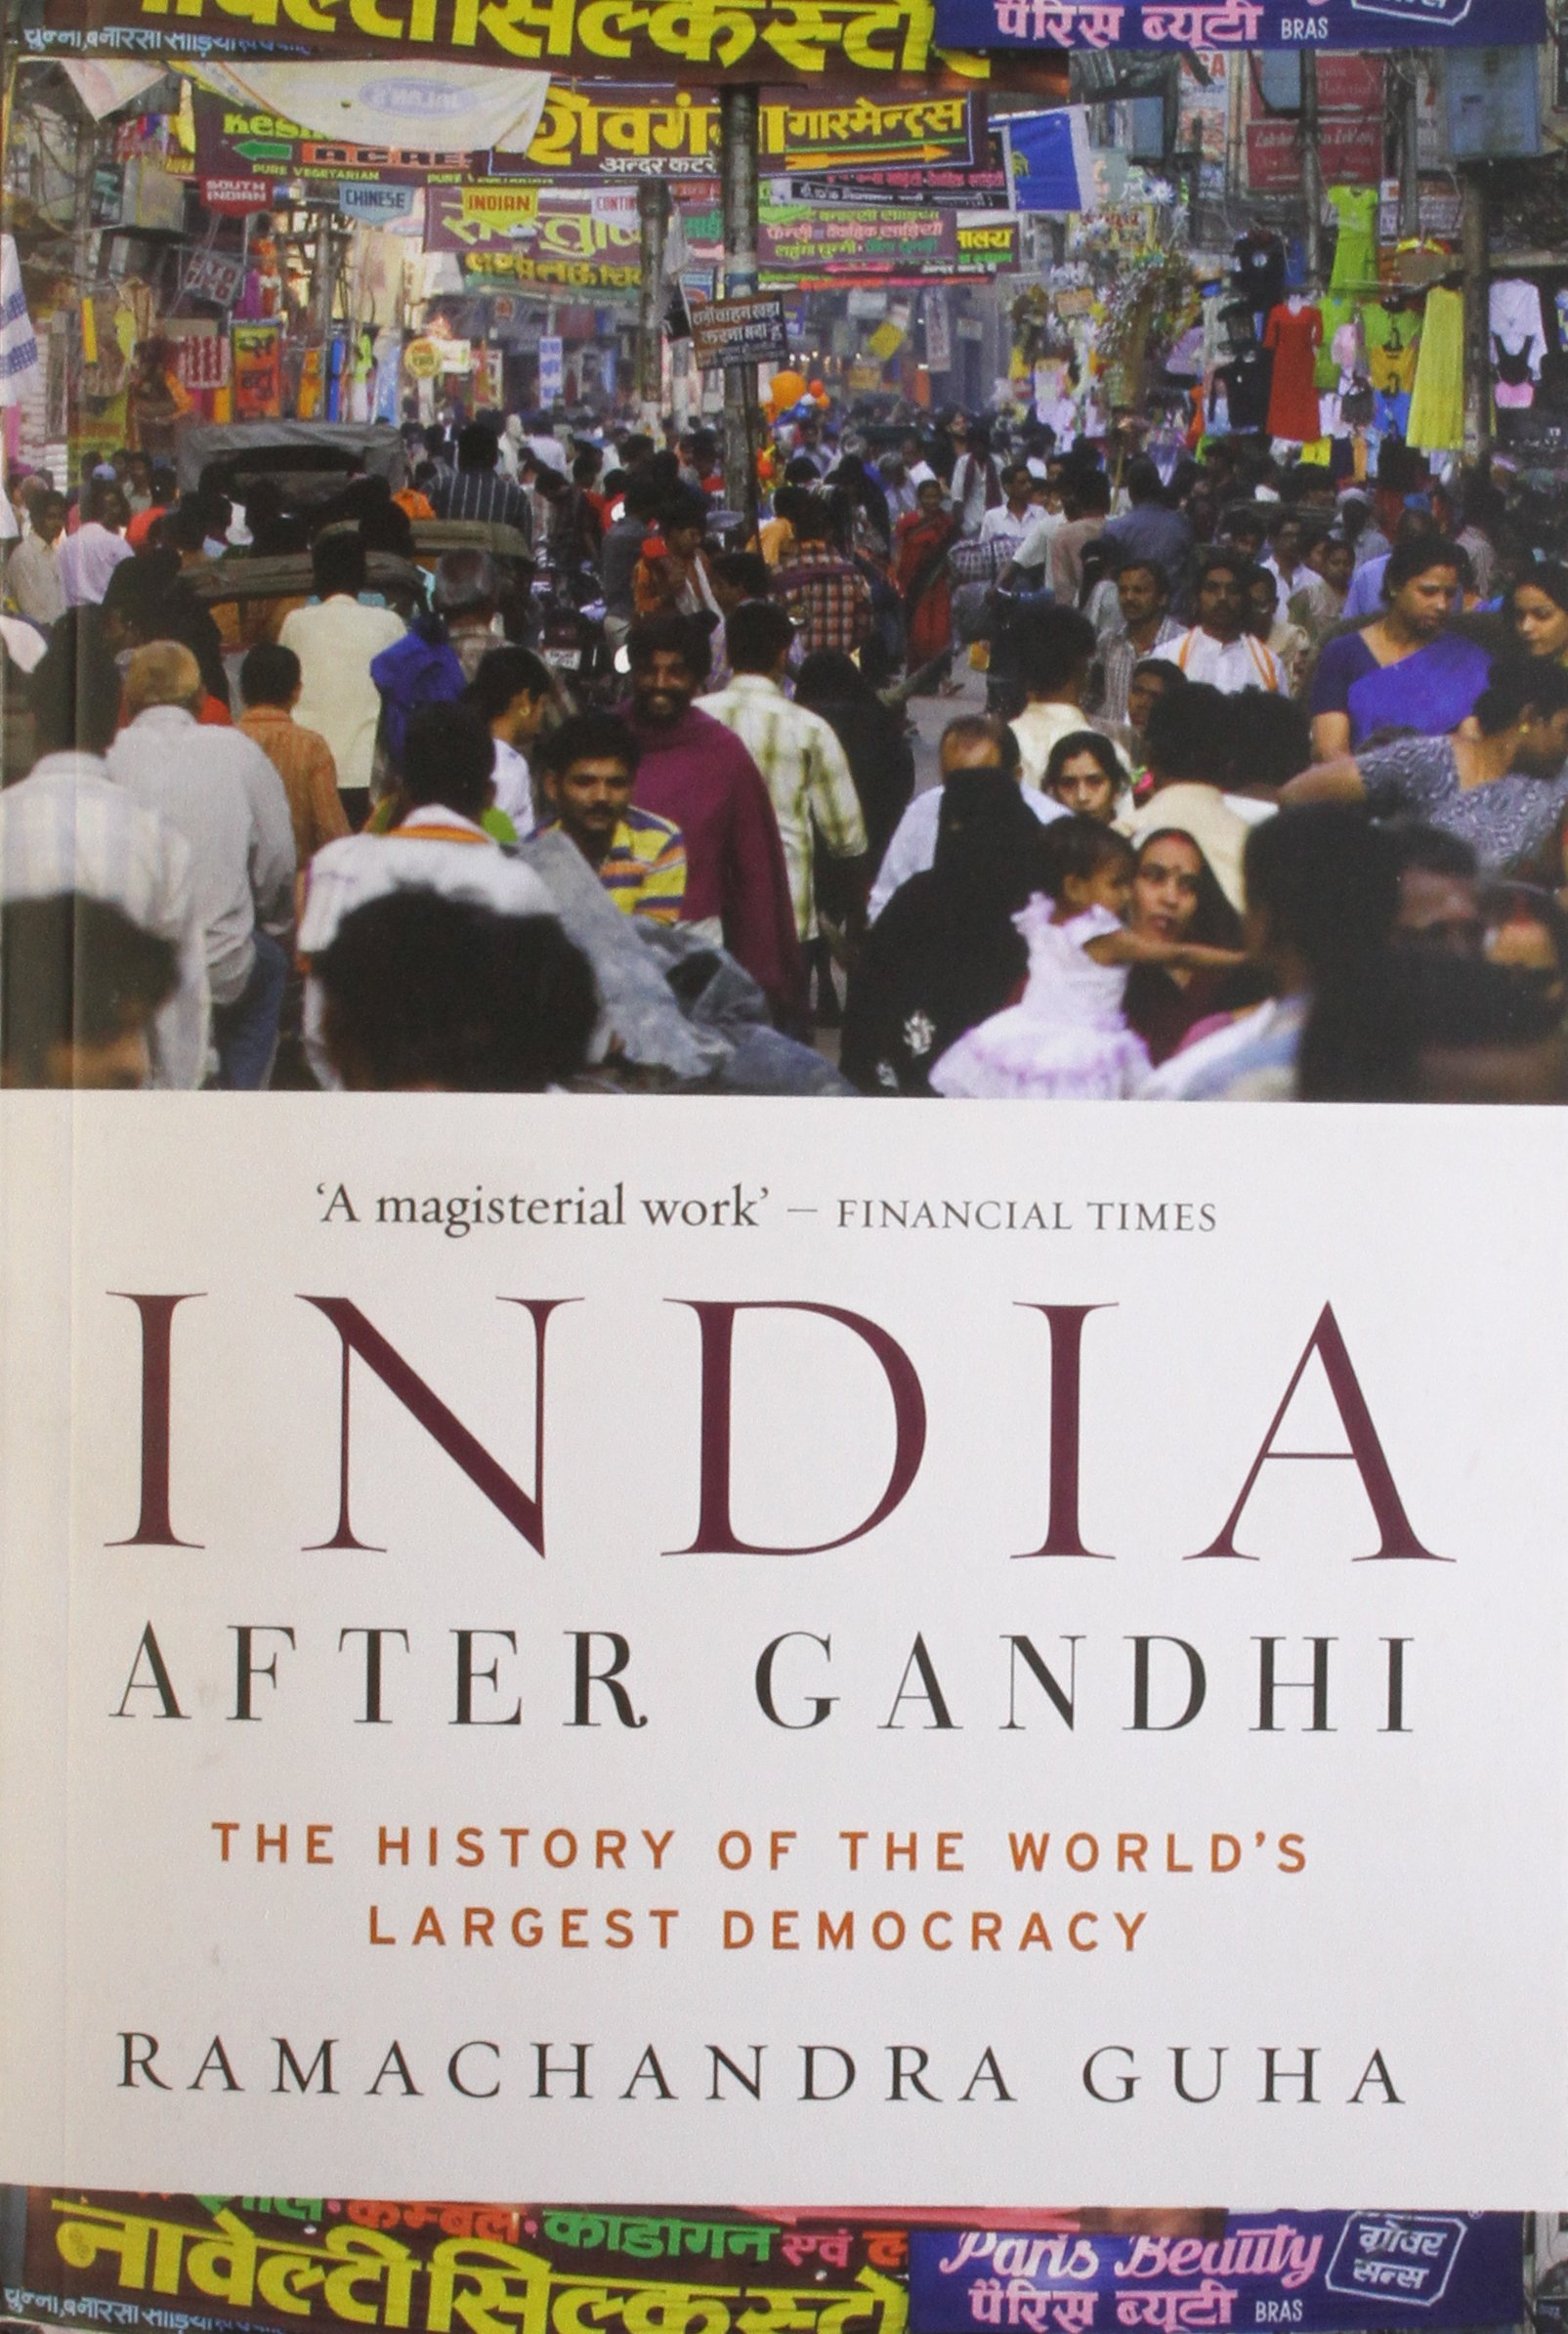 India After Gandhi: The History of the World